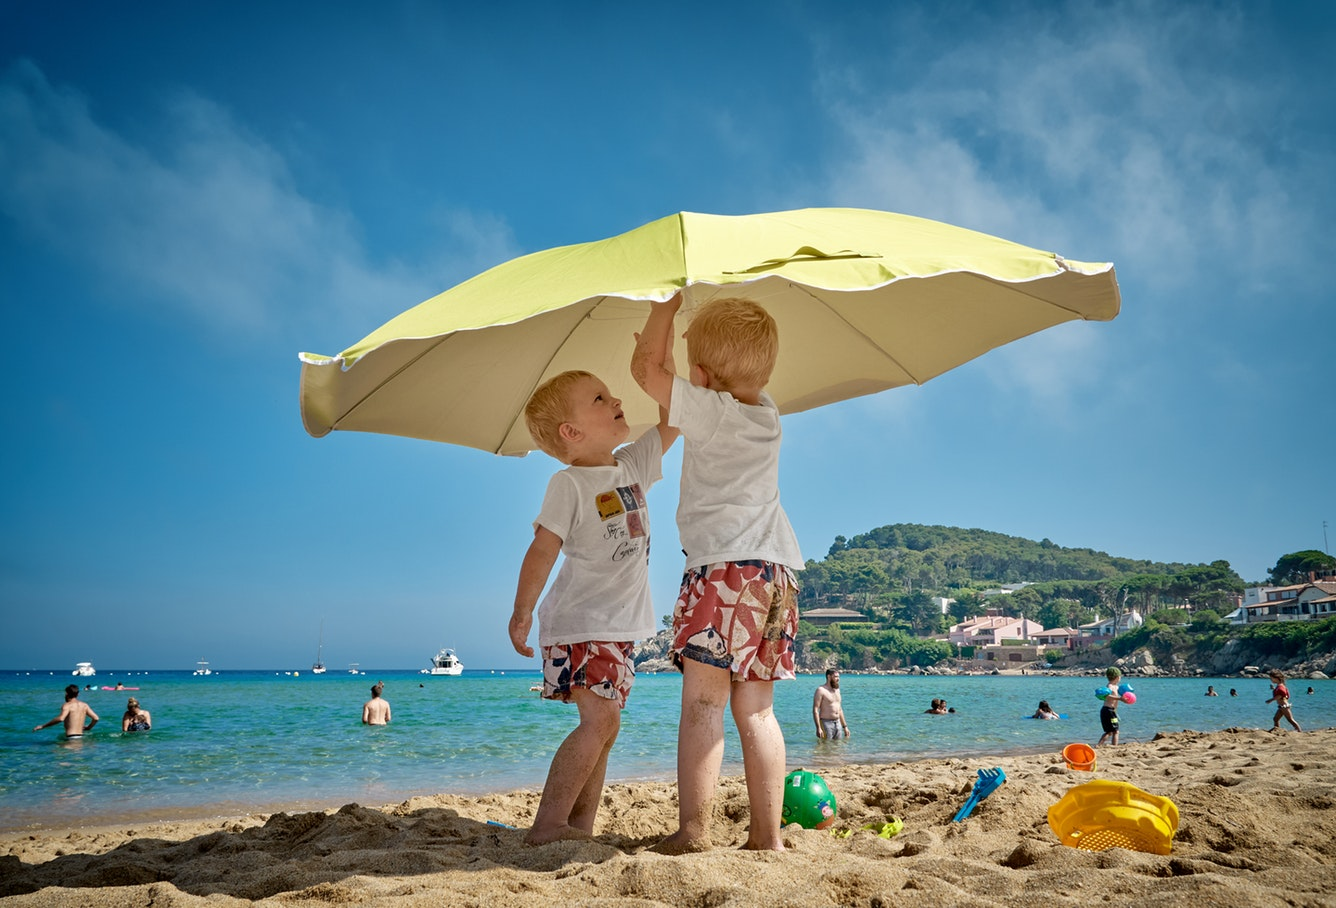 Kids are inconvenient if you are not ready for vacation